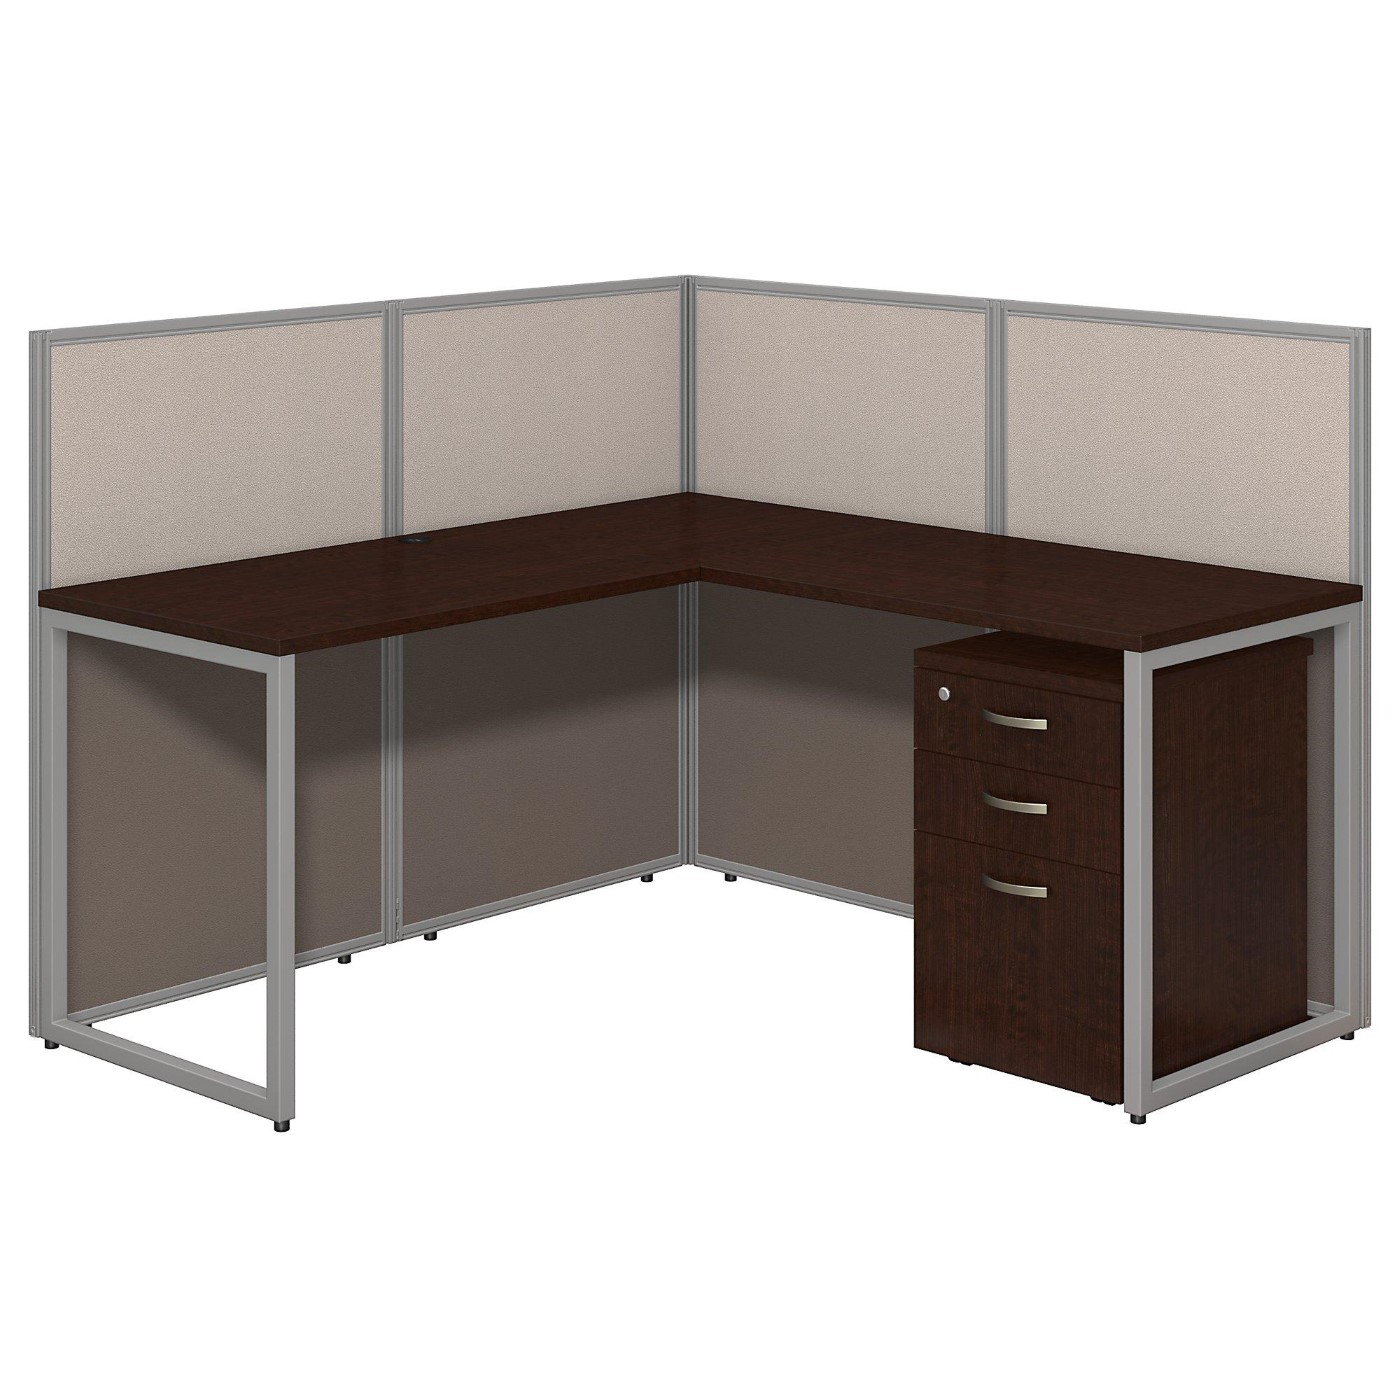 BUSH BUSINESS FURNITURE EASY OFFICE 60W L SHAPED DESK OPEN OFFICE WITH MOBILE FILE CABINET. FREE SHIPPING.  SALE DEDUCT 10% MORE ENTER '10percent' IN COUPON CODE BOX WHILE CHECKING OUT. ENDS 5-31-20.